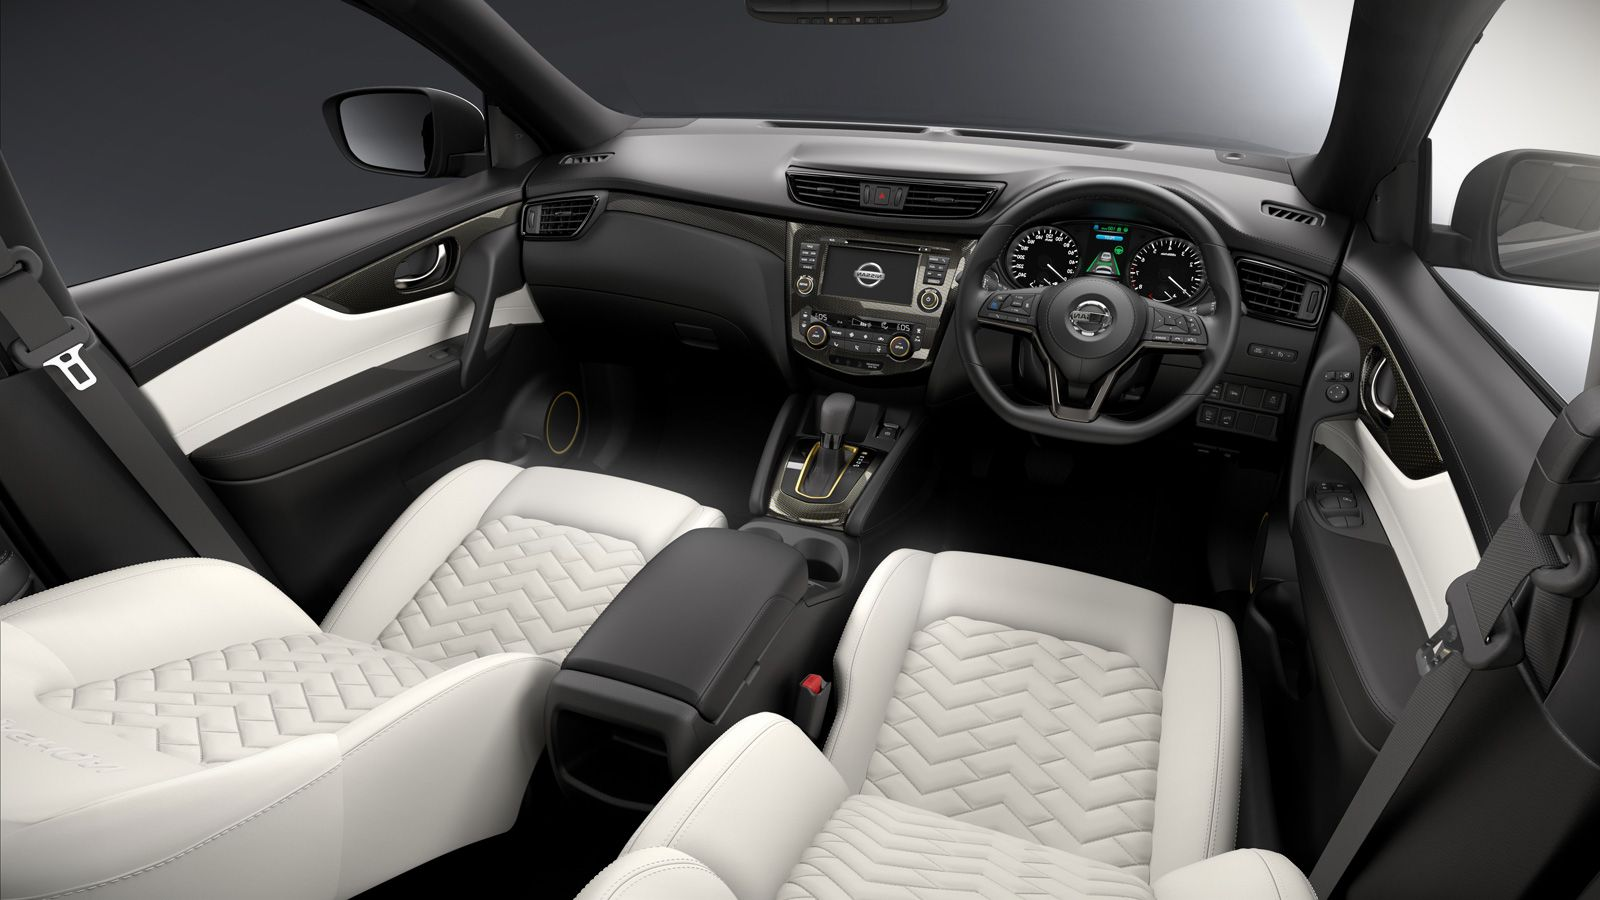 2018 Nissan Qashqai interior changes